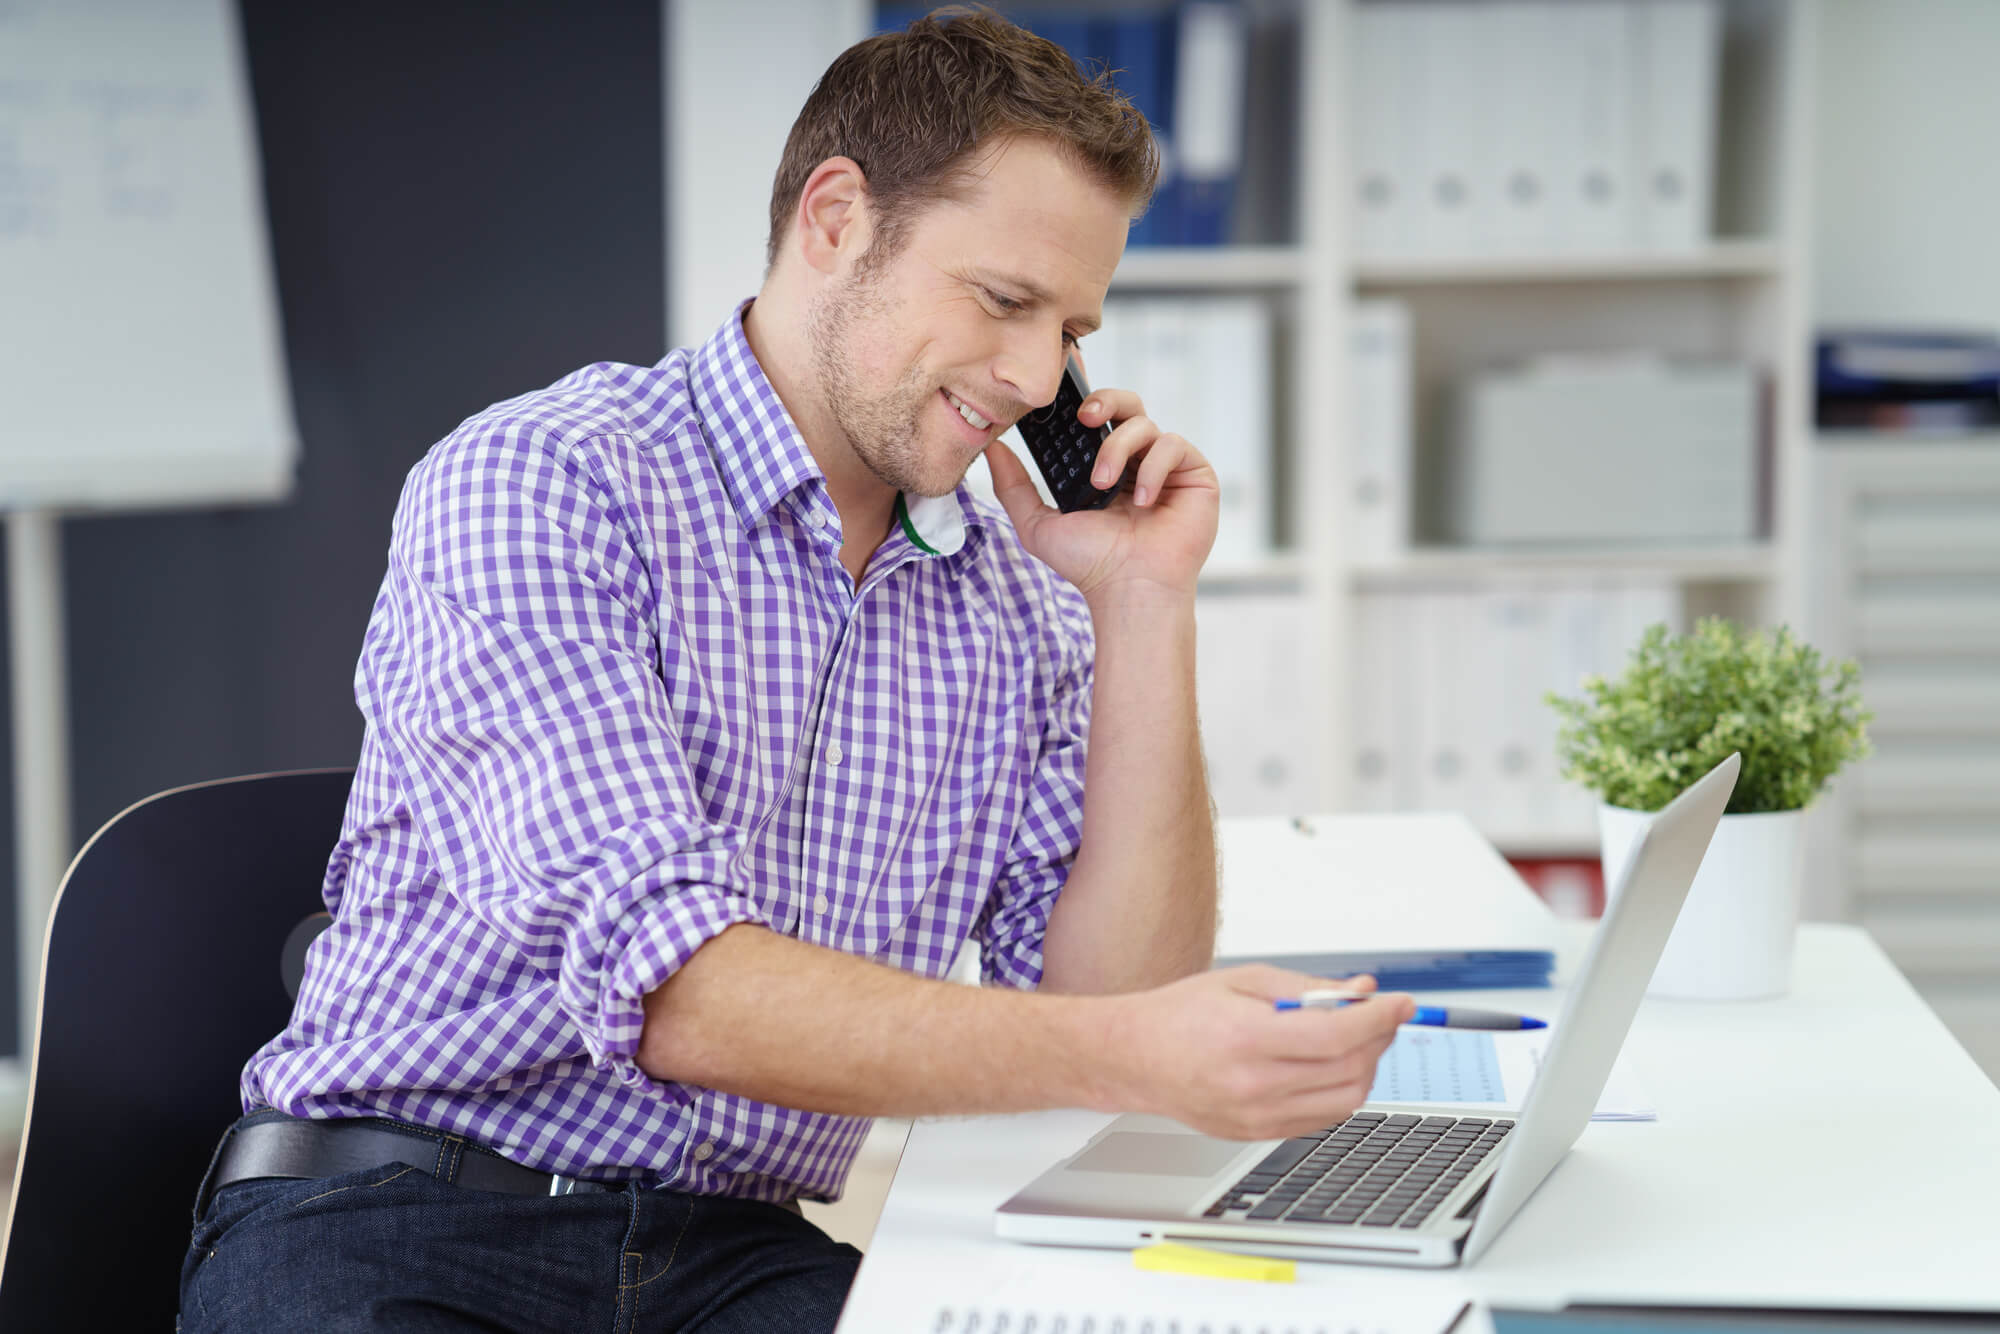 Man on phone with computer